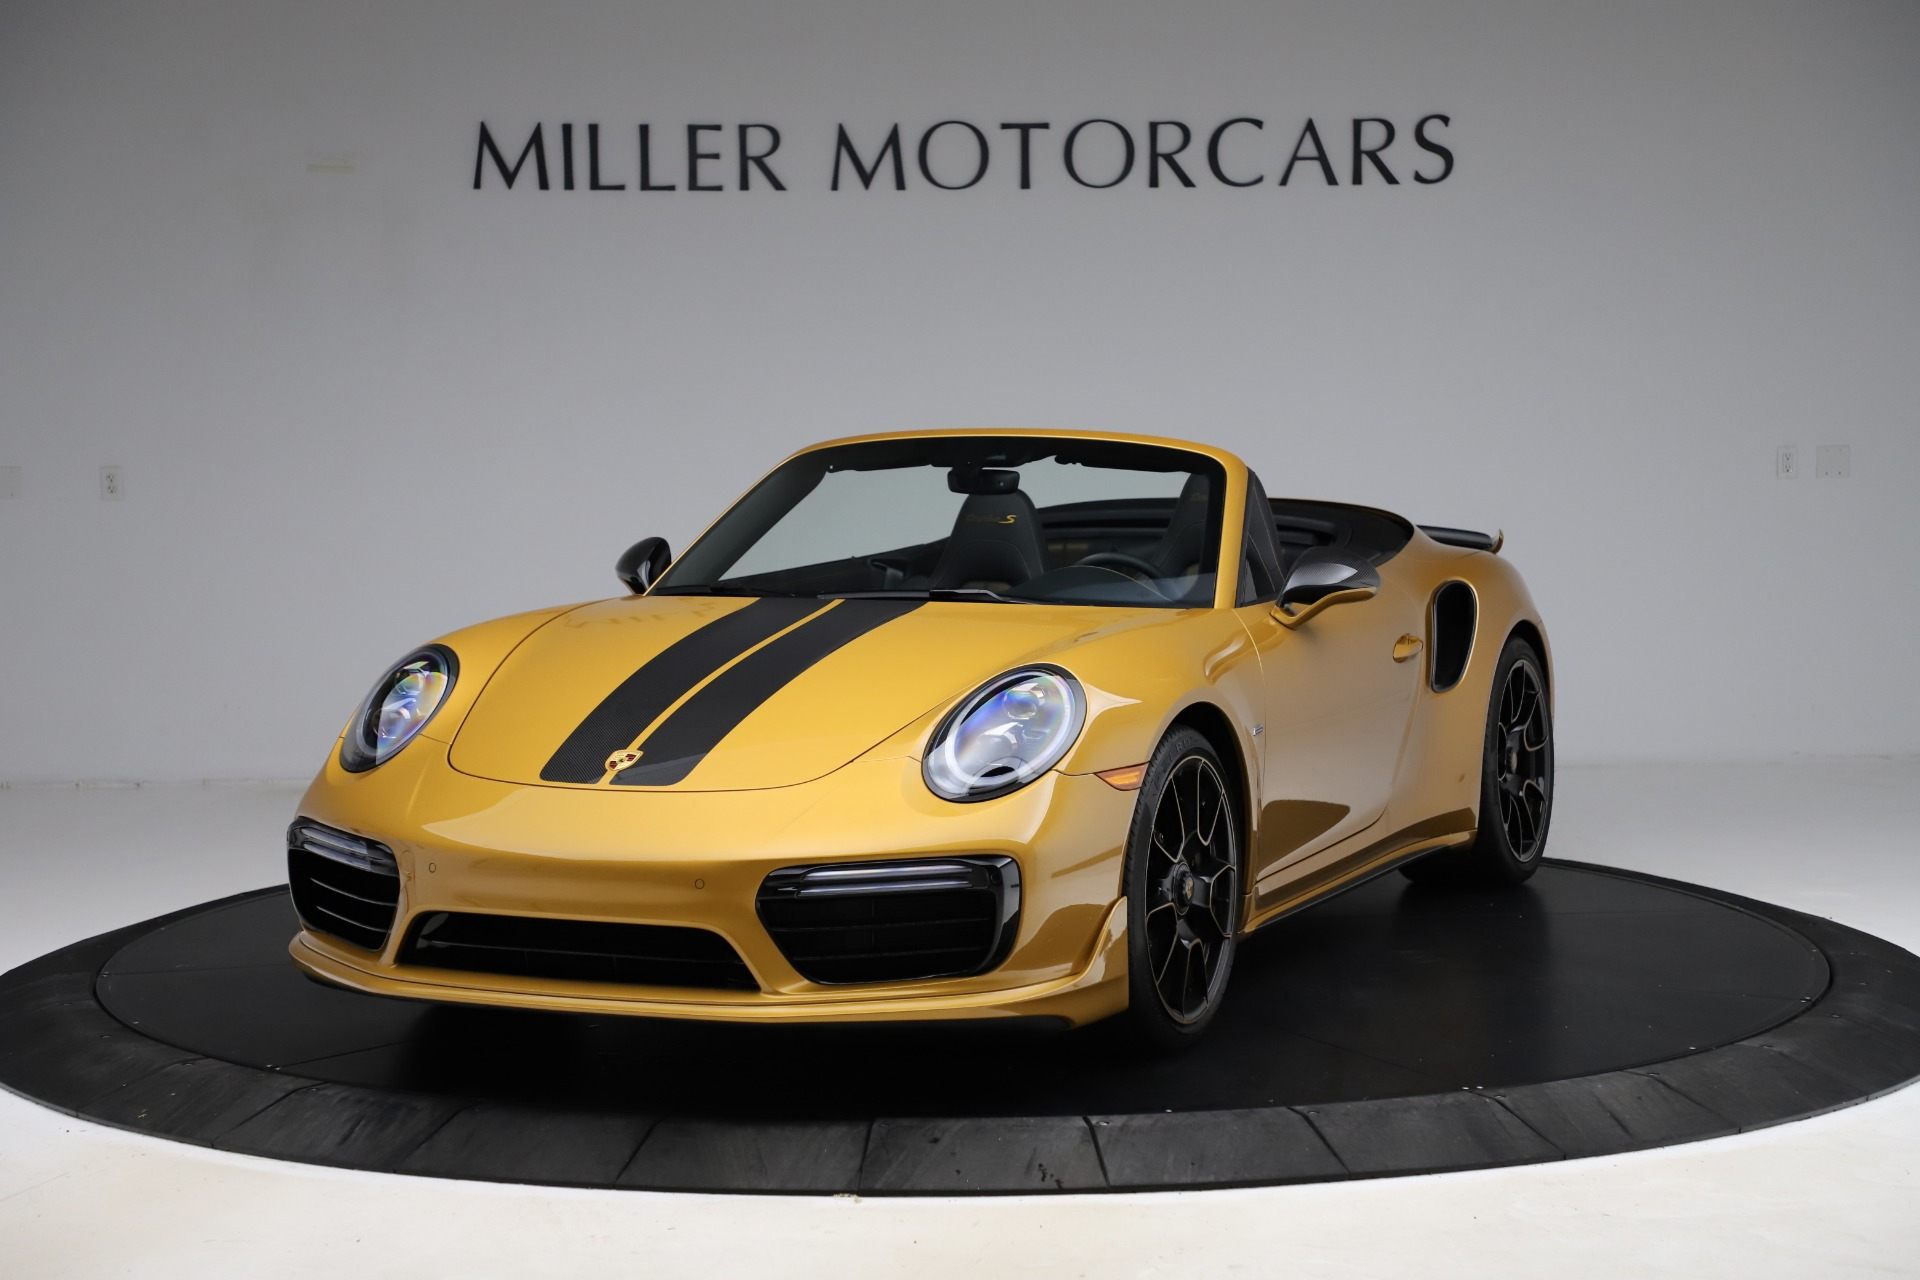 Used 2019 Porsche 911 Turbo S Exclusive for sale Sold at Bugatti of Greenwich in Greenwich CT 06830 1